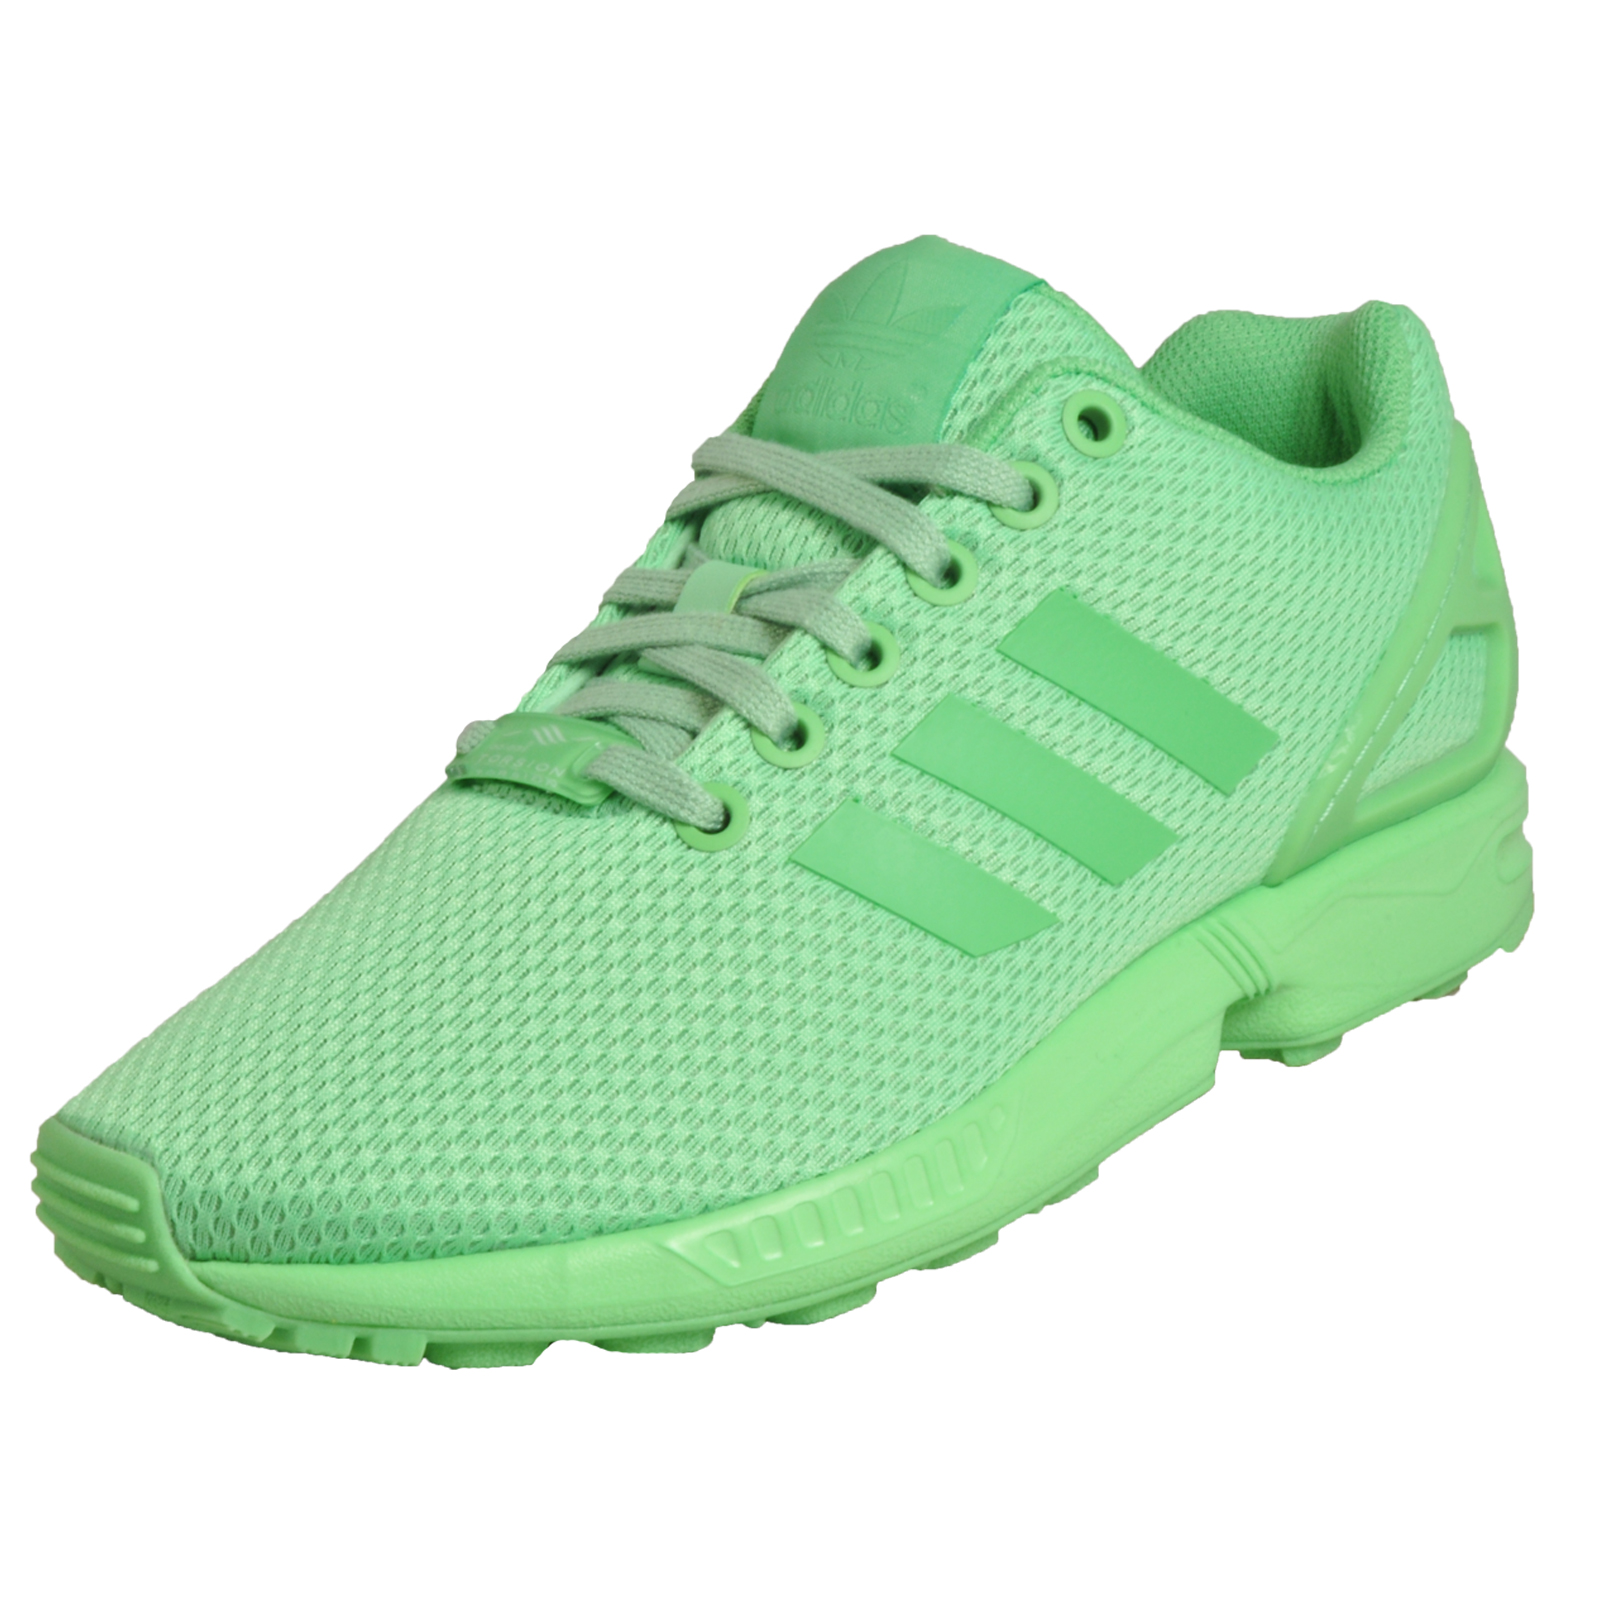 1eb5b5b99 Details about Adidas Originals ZX Flux Women s Classic Casual Gym Fitness  Trainers Green